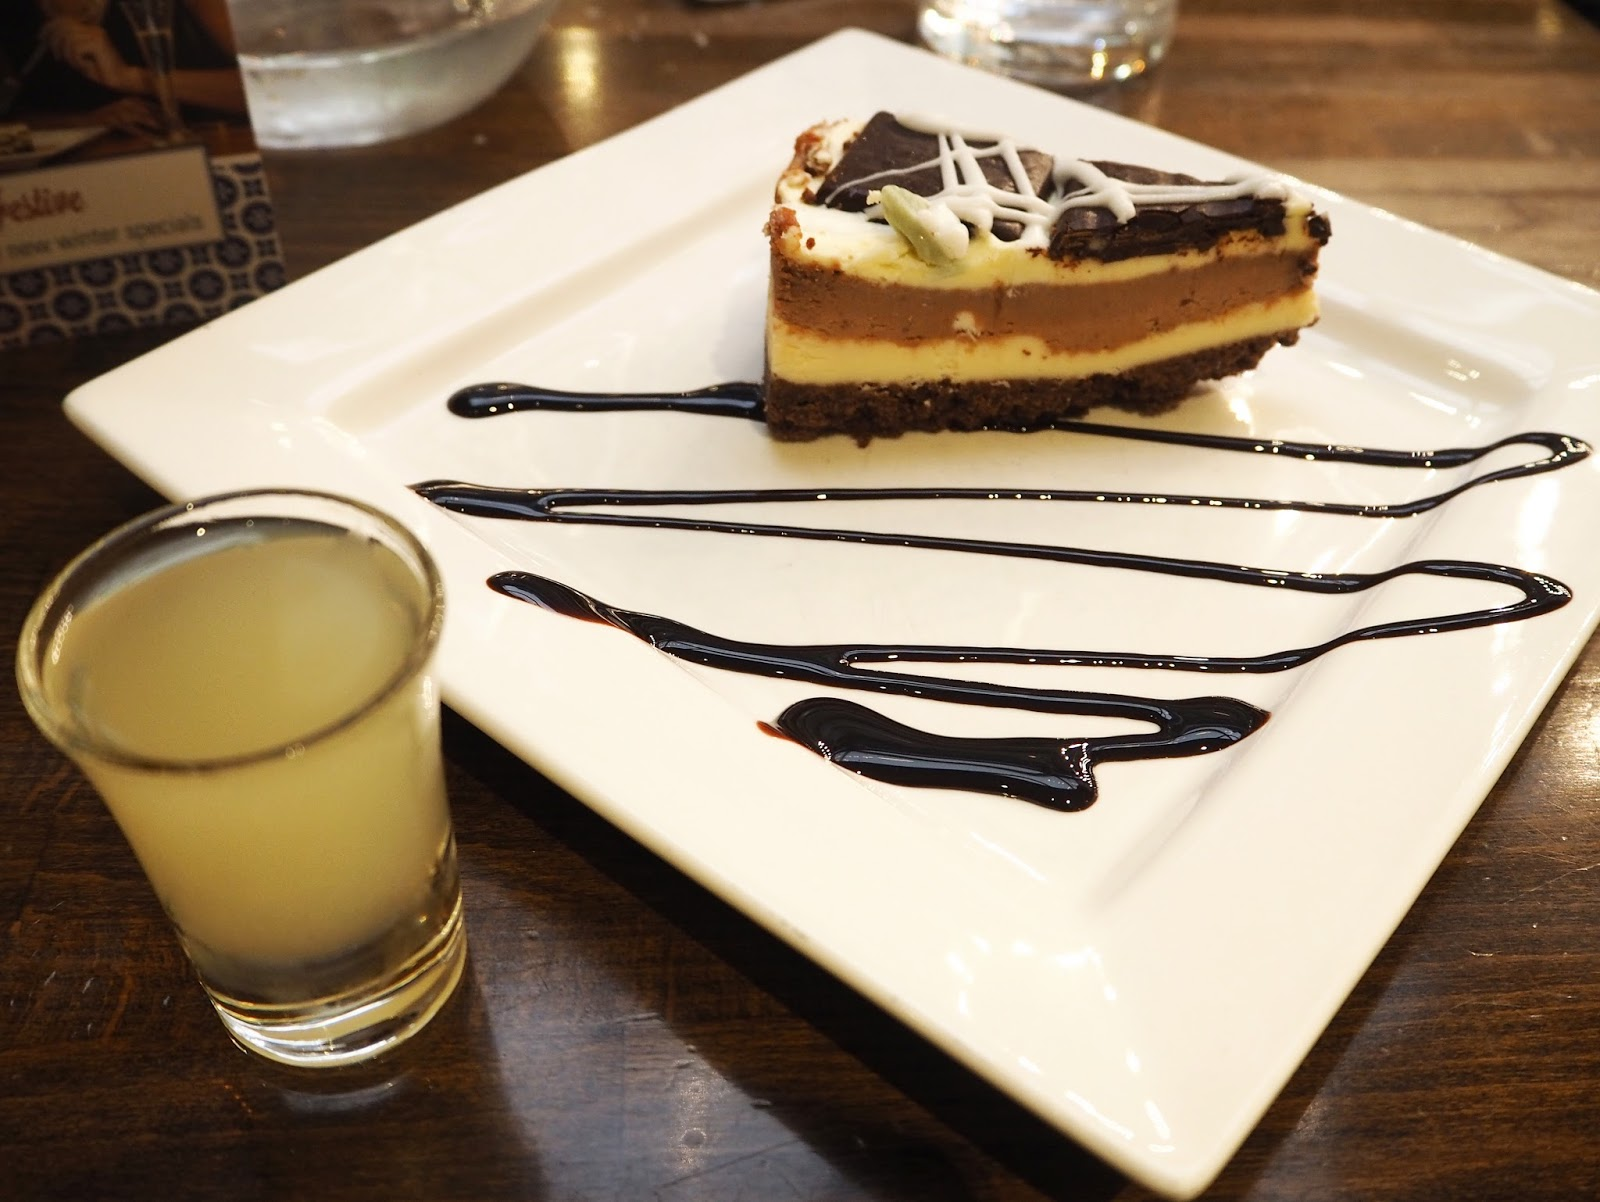 Prezzo Italian: Mint Chocolate Cheesecake with a shot of Limoncello